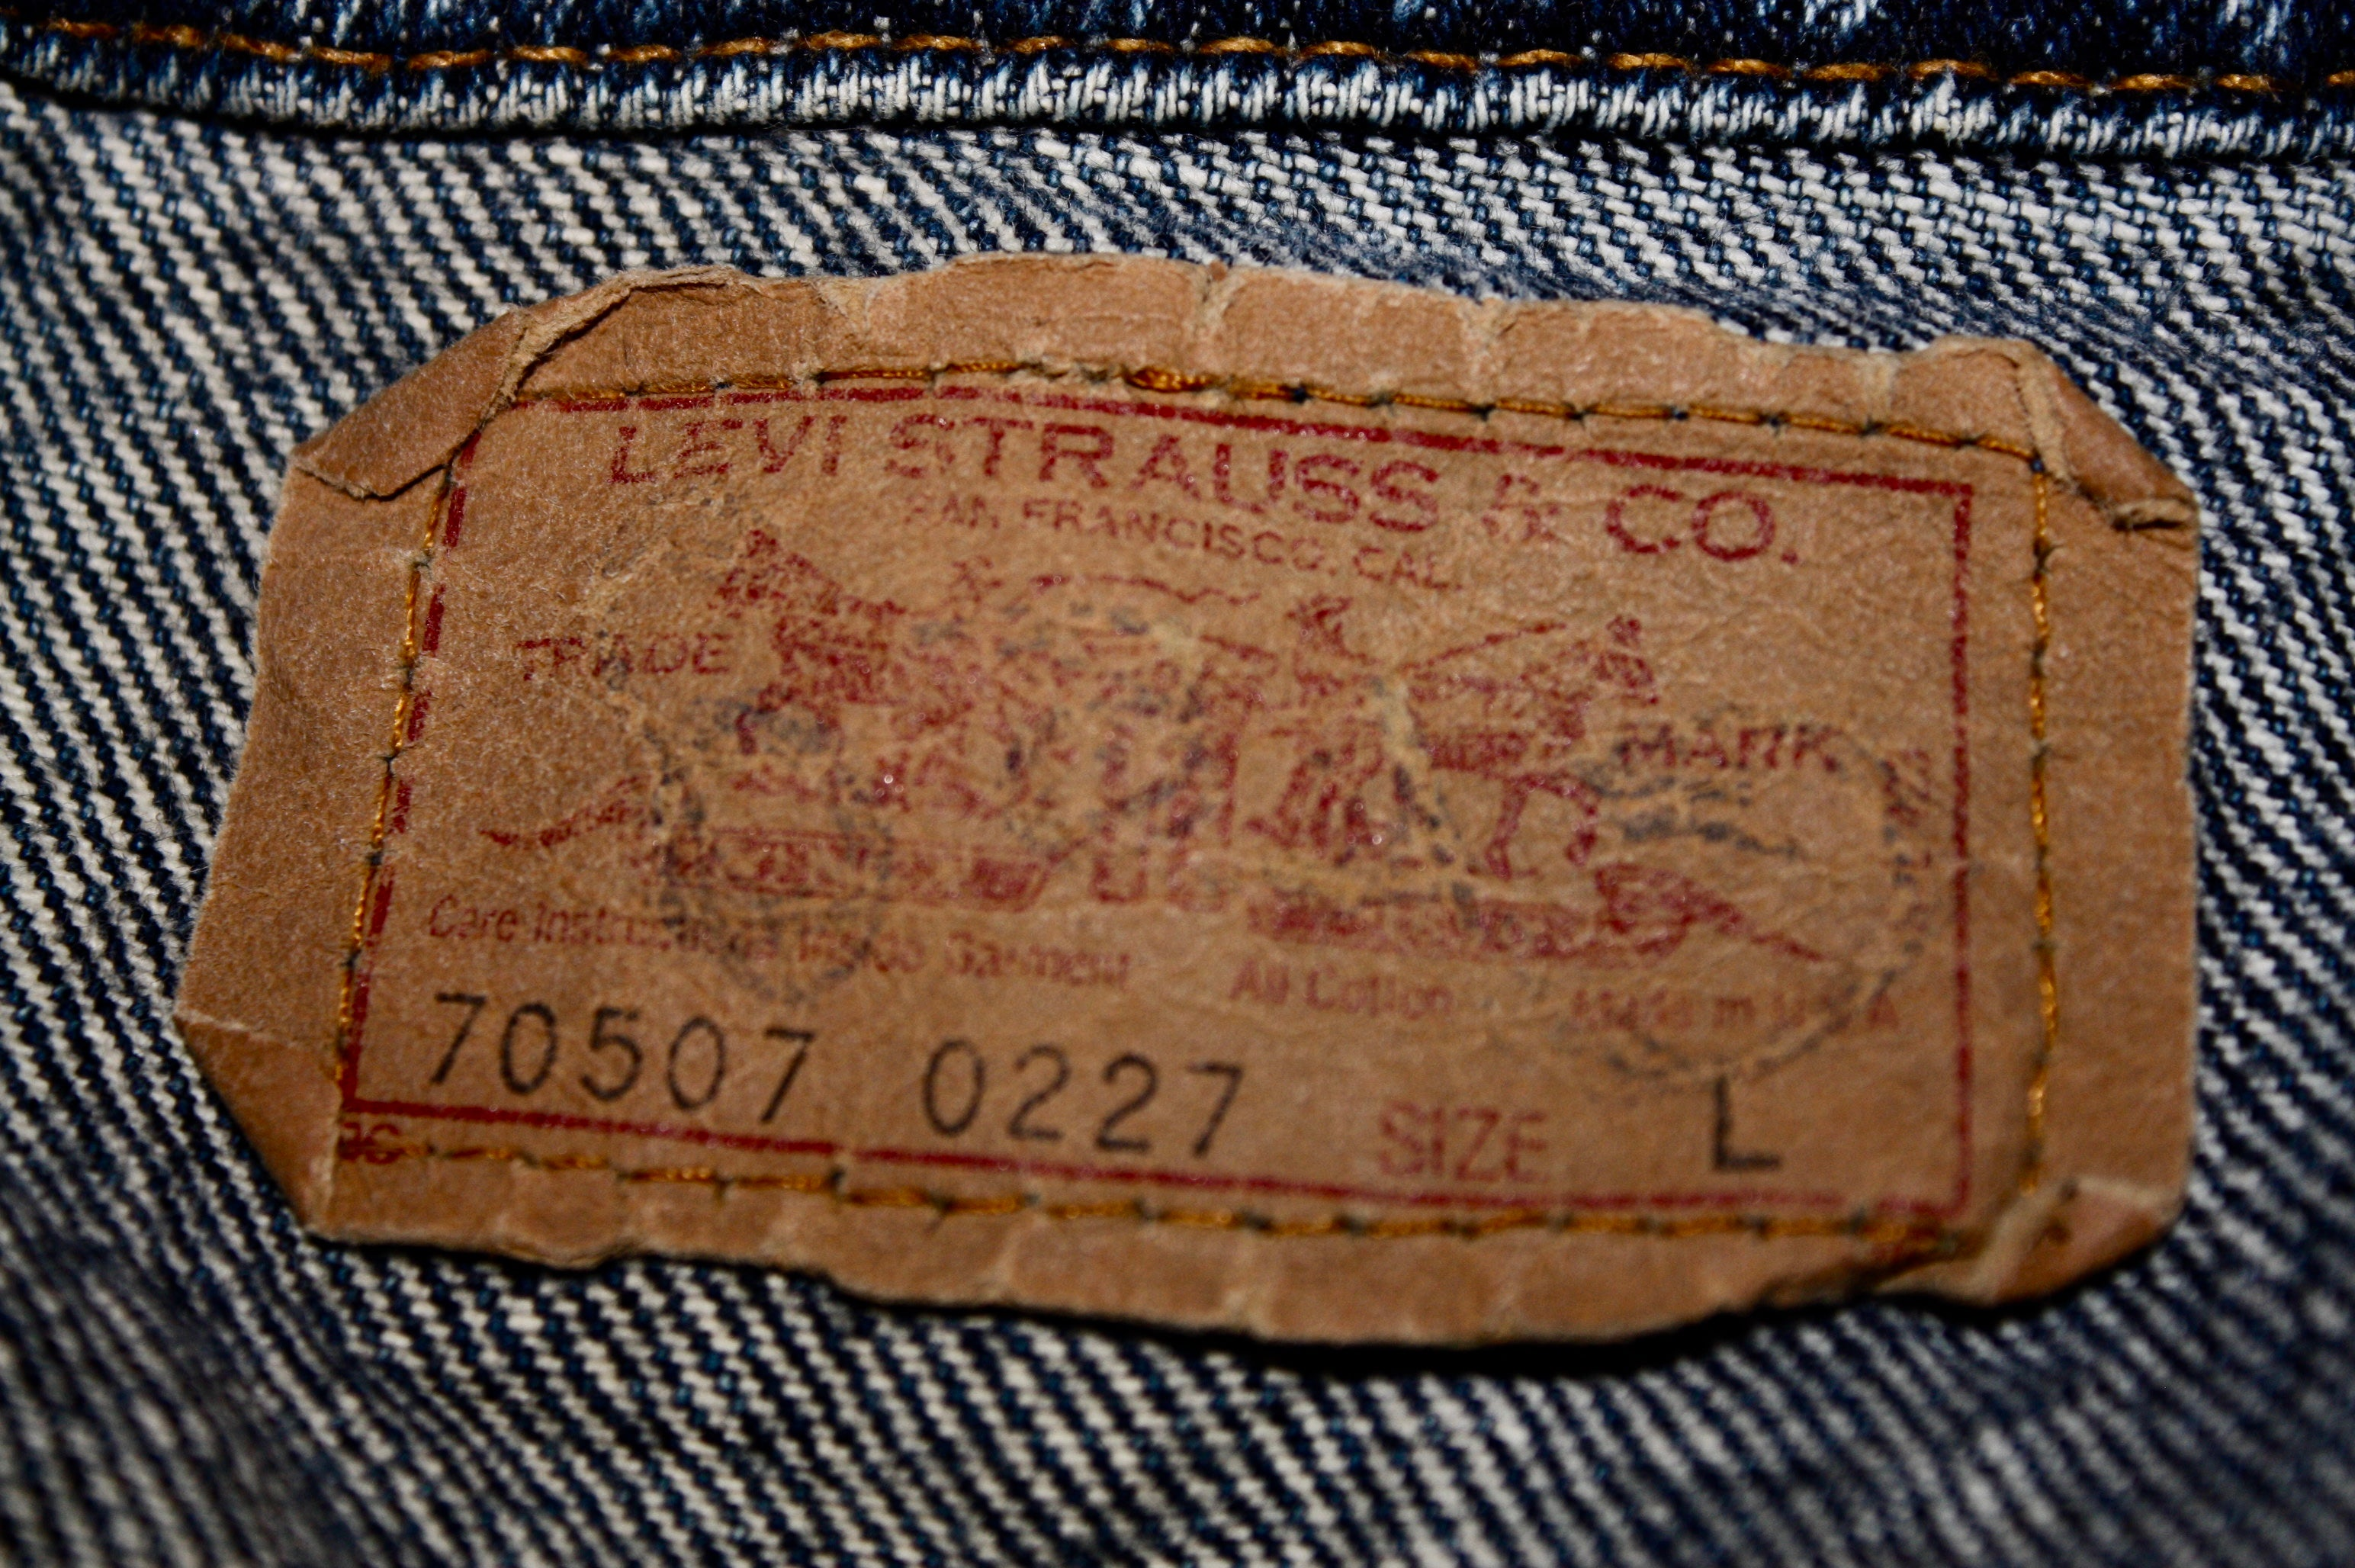 Original 1984 Levis Strauss Denim Jacket